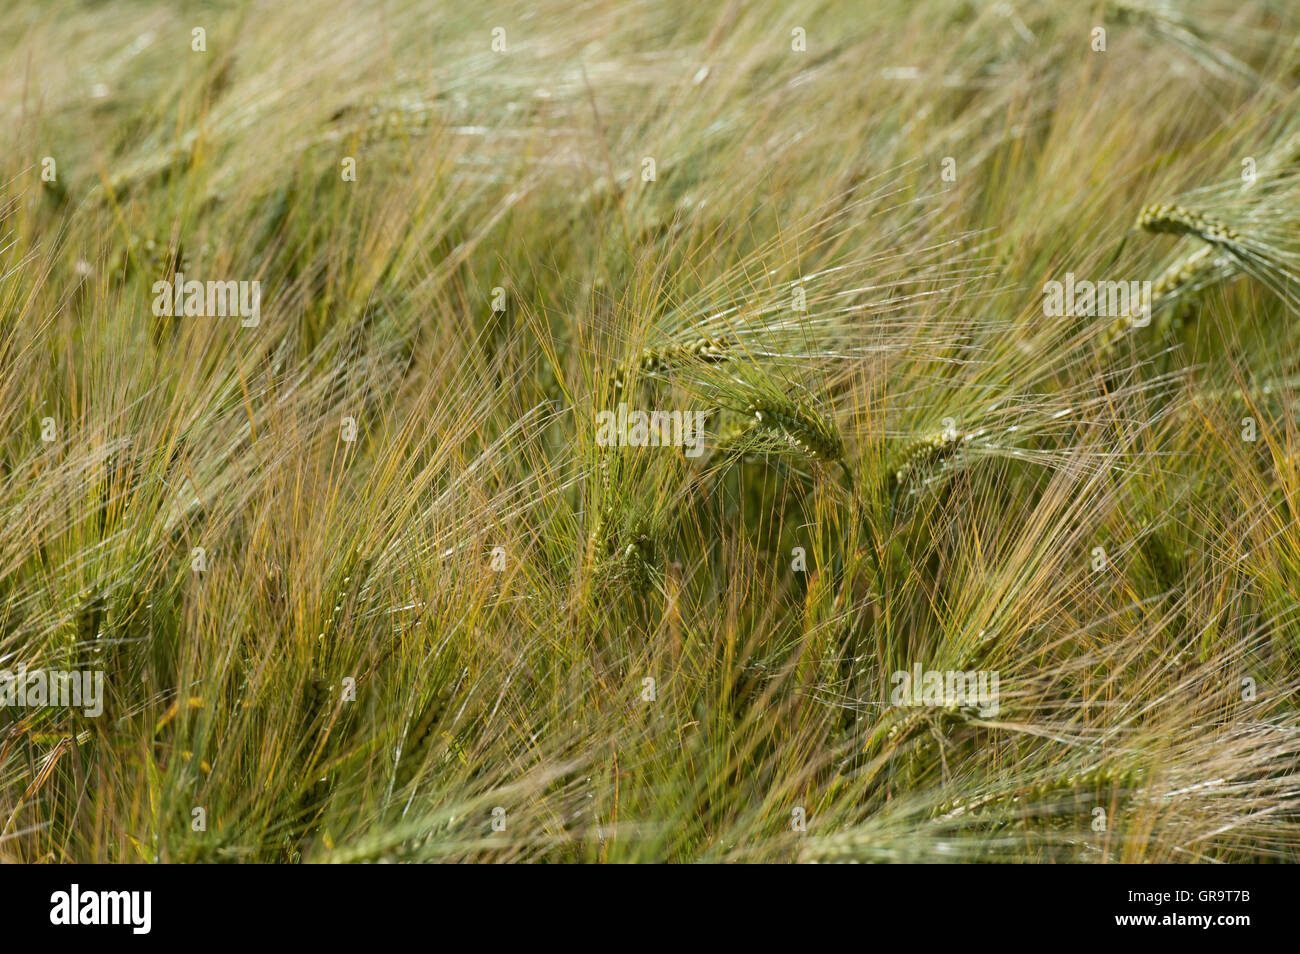 ears of barley swayed by the wind - Stock Image